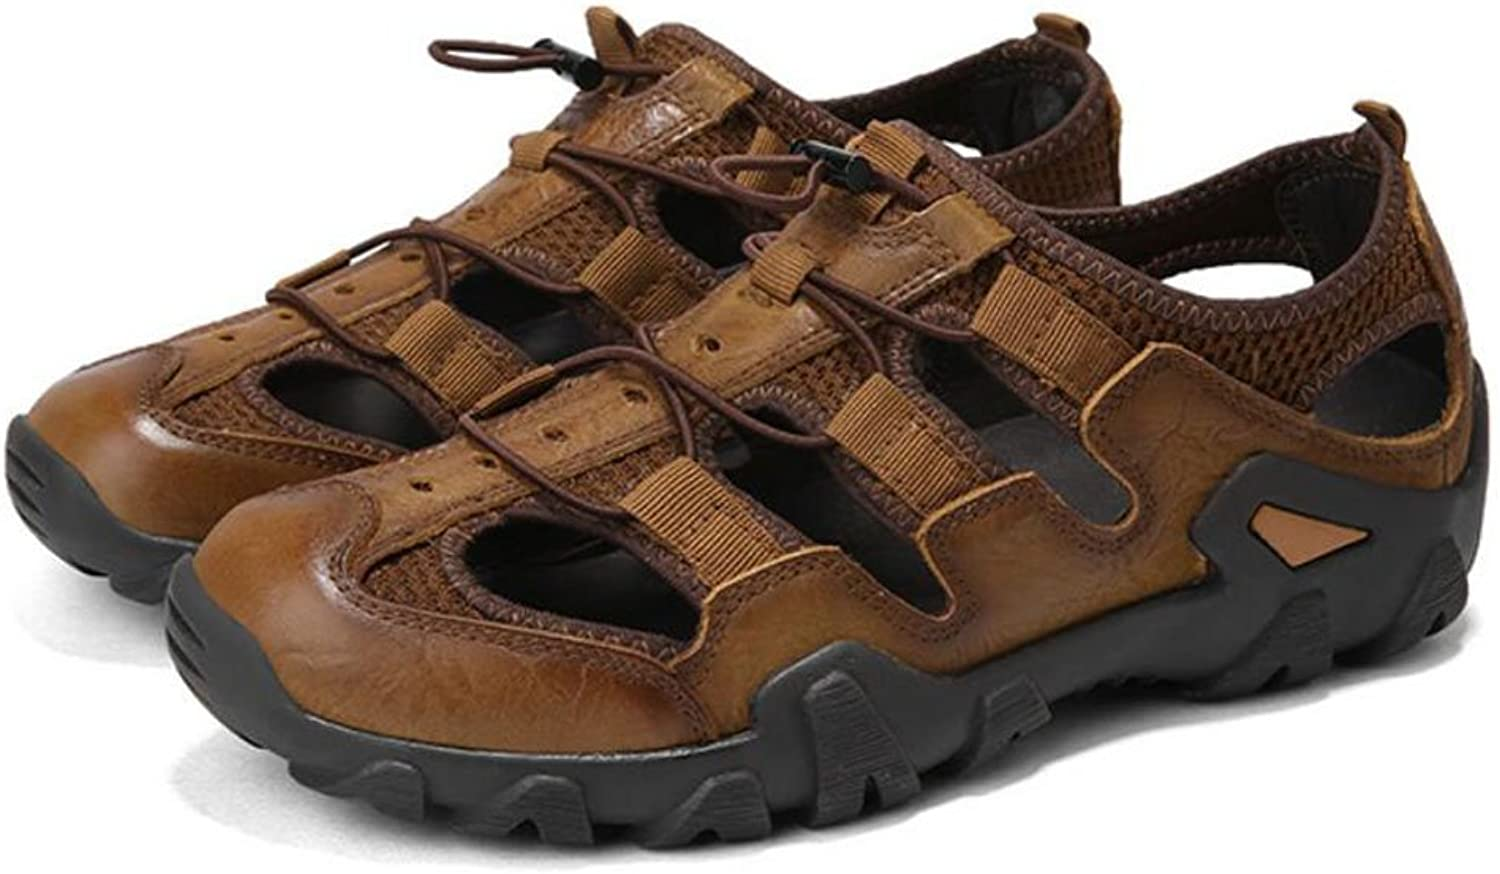 SQSMCW Men's Leather Sandals Summer Outdoor Beach shoes Fashion Flat Casual shoes Outdoor Walking shoes Driving shoes (color   Brown, Size   9 US)